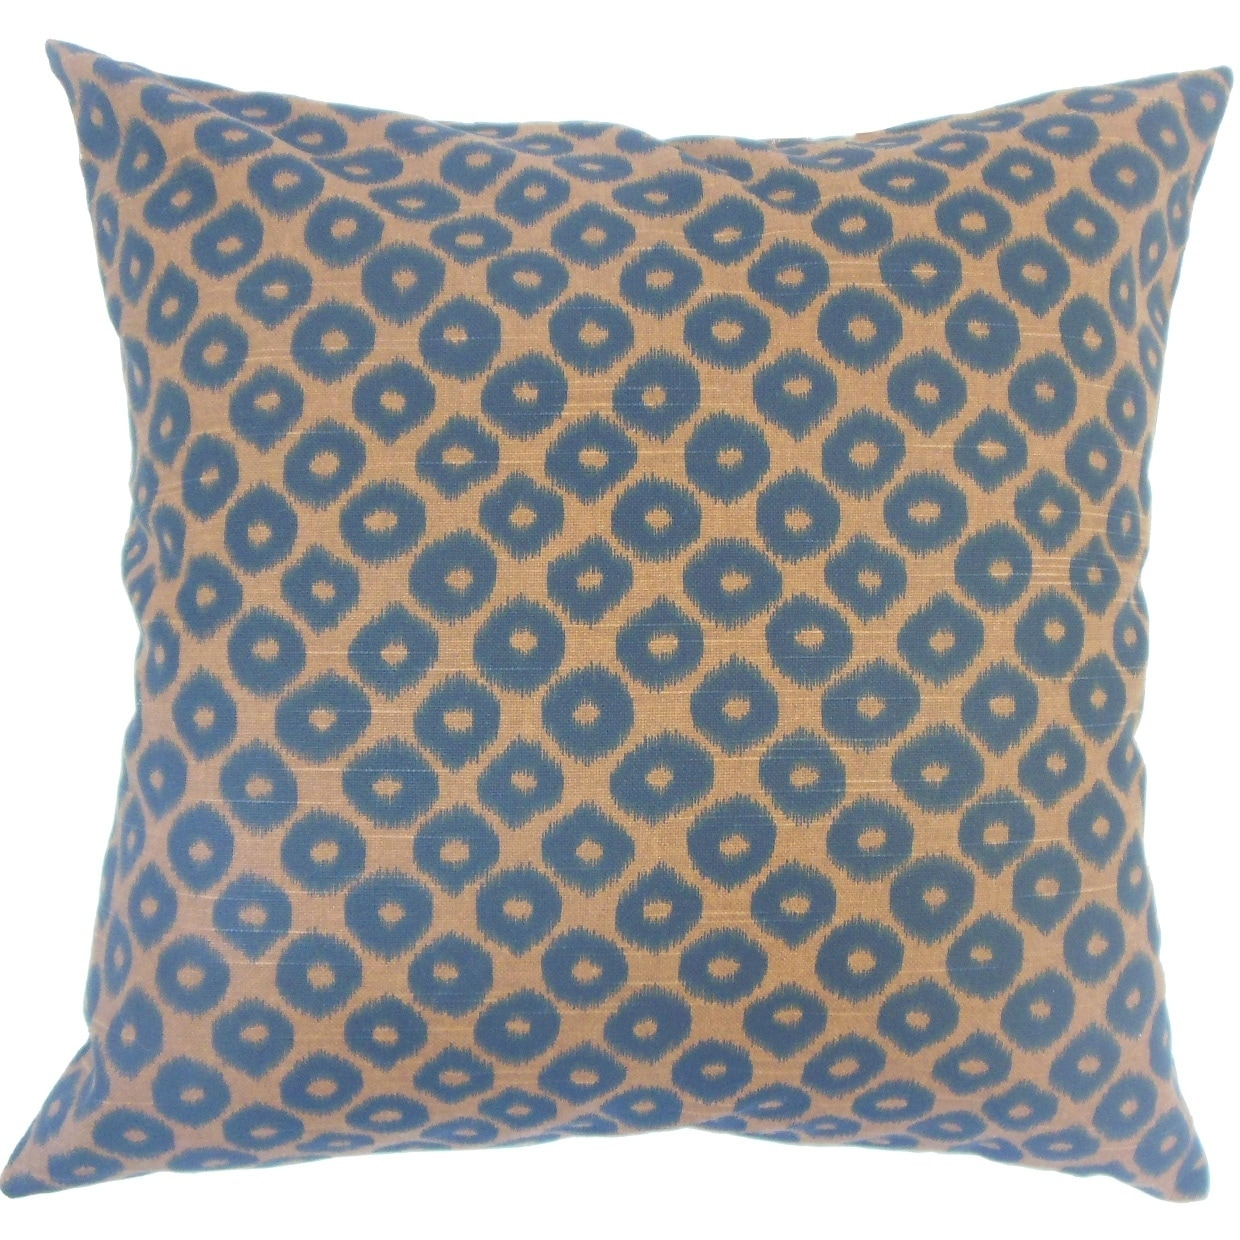 Alikae Ikat Down Filled Throw Pillow in Chocolate (Square - 22 x 22)